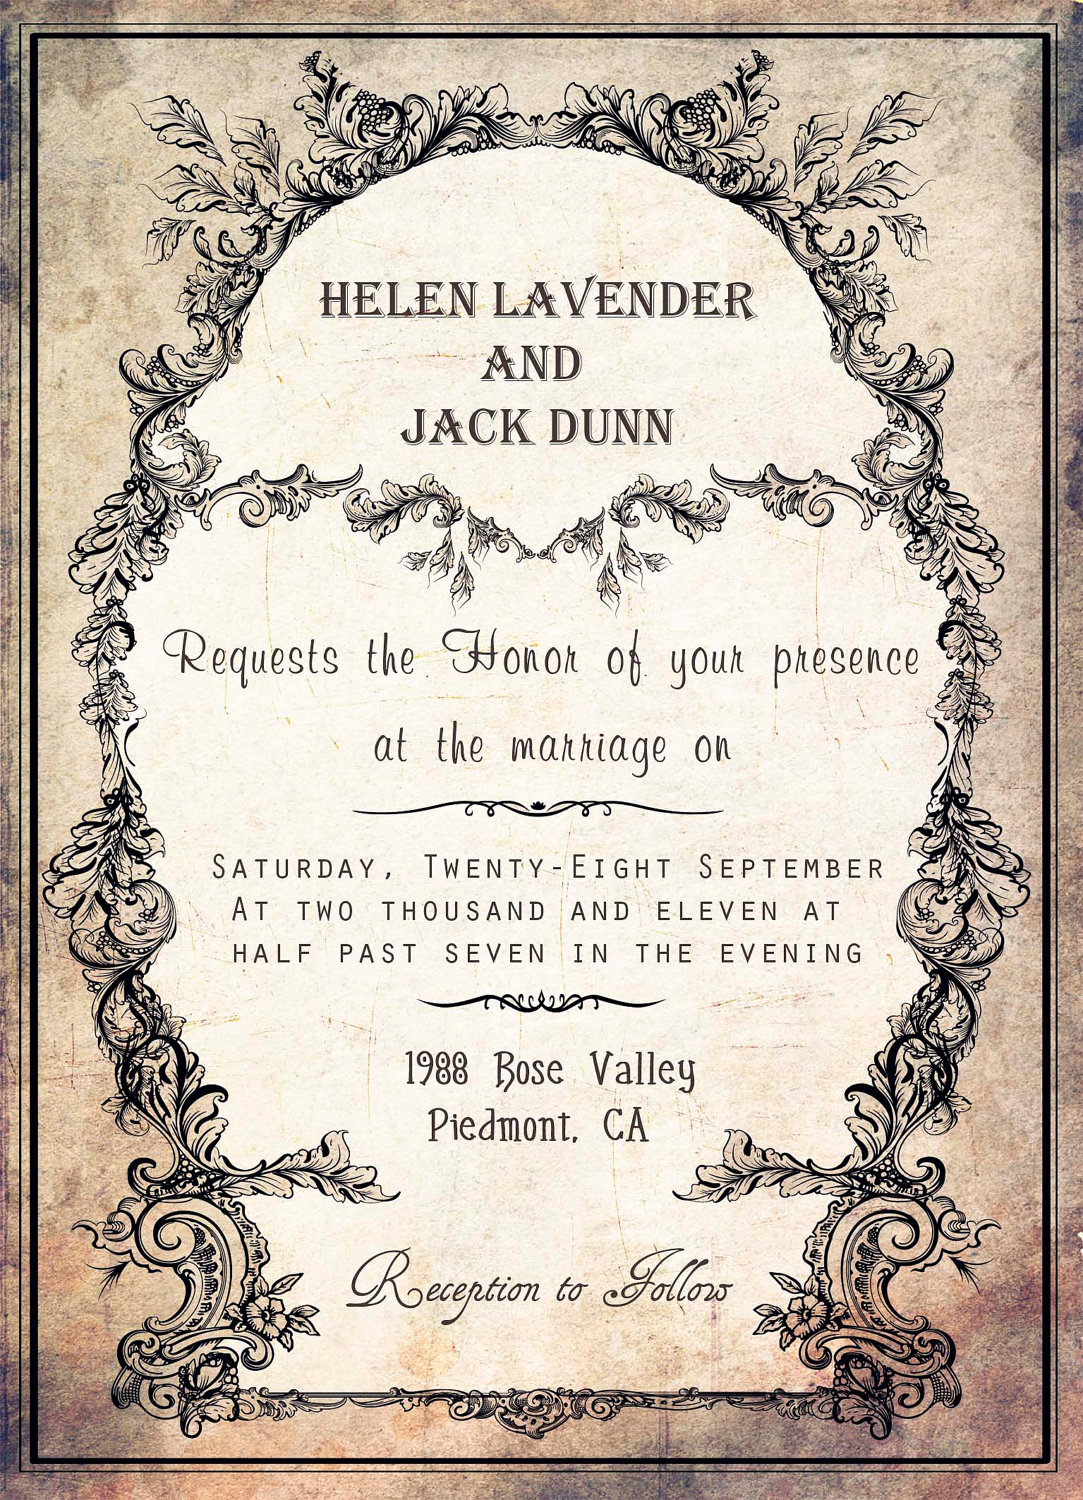 Silver Wedding Invitations Free Wedding Invitation Templates - Wedding invitation templates: free templates for wedding invitations